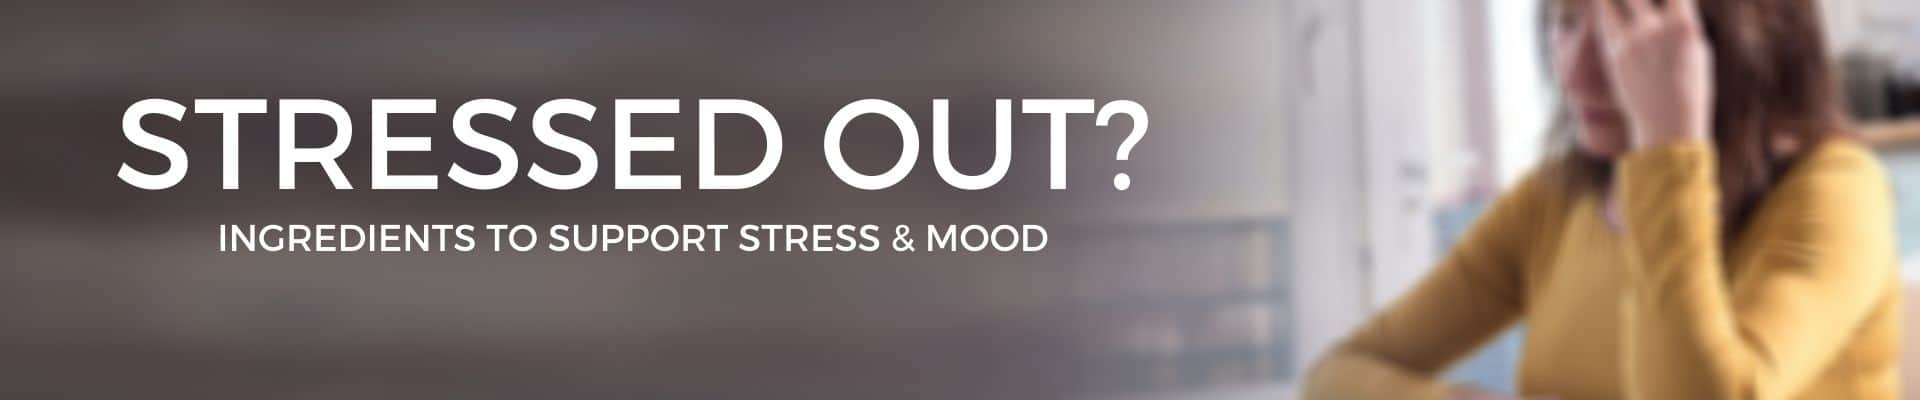 Stress & Mood Support Ingredients From NutriCargo